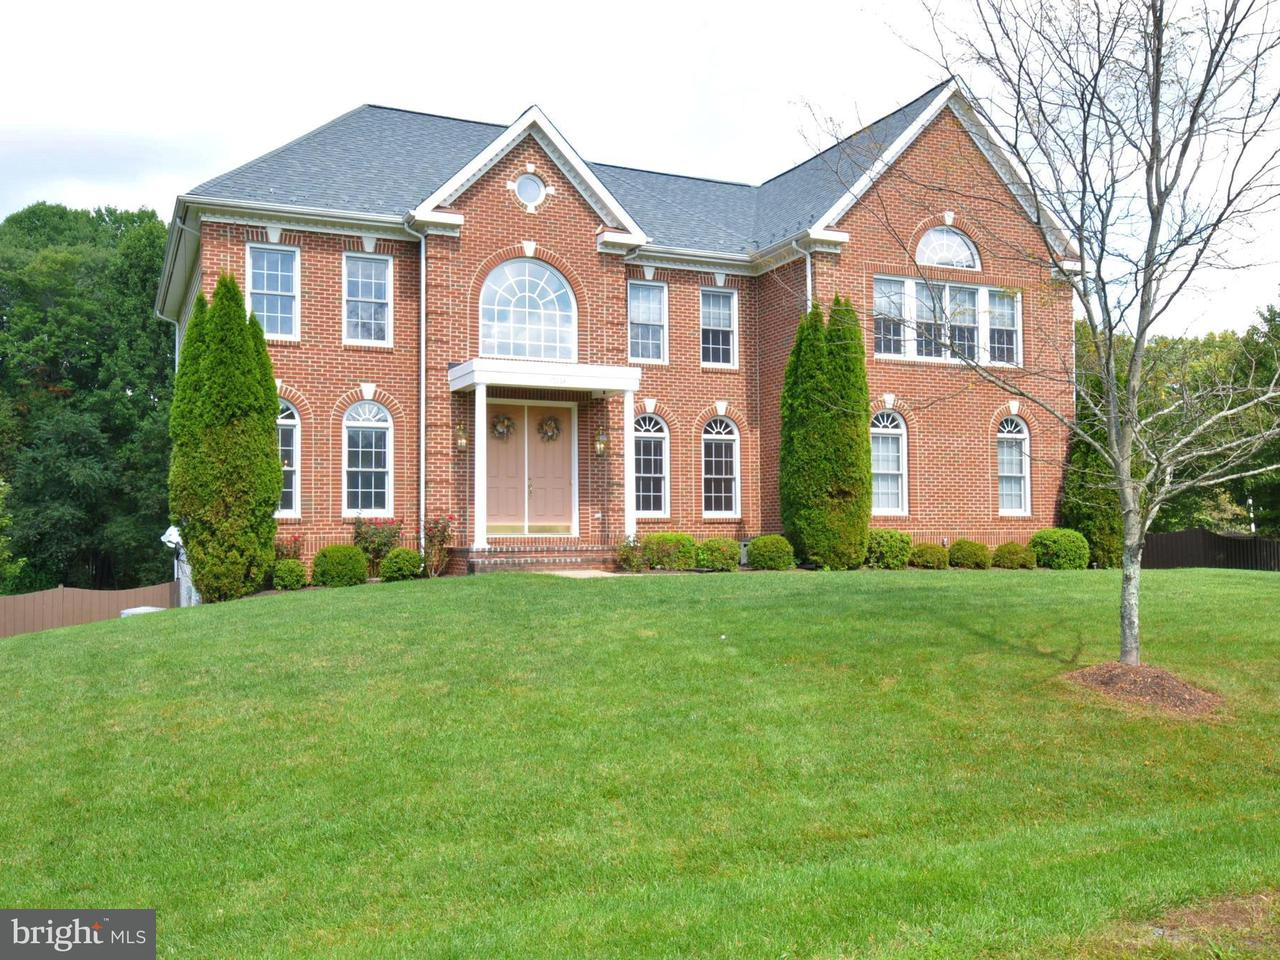 Single Family Home for Sale at 7268 Tinsley Way 7268 Tinsley Way Manassas, Virginia 20111 United States